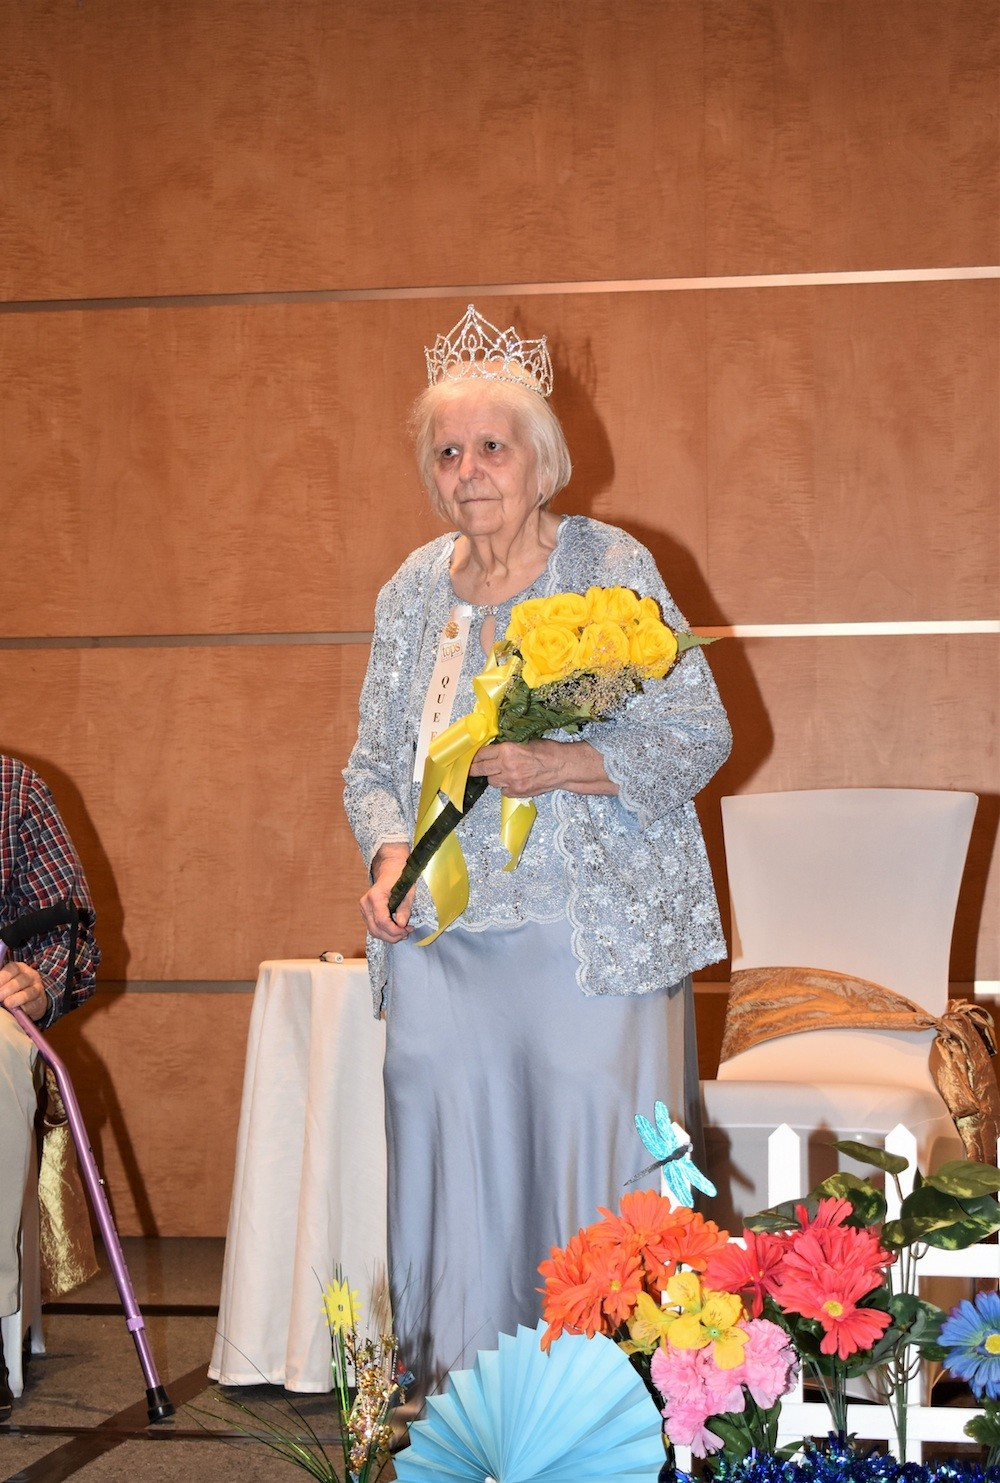 Alma Scott, of Toledo, was crowned the 2020 TOPS (Take Off Pounds Sensibly) Ohio Queen, after losing 156.5 pounds. (Submitted photo)